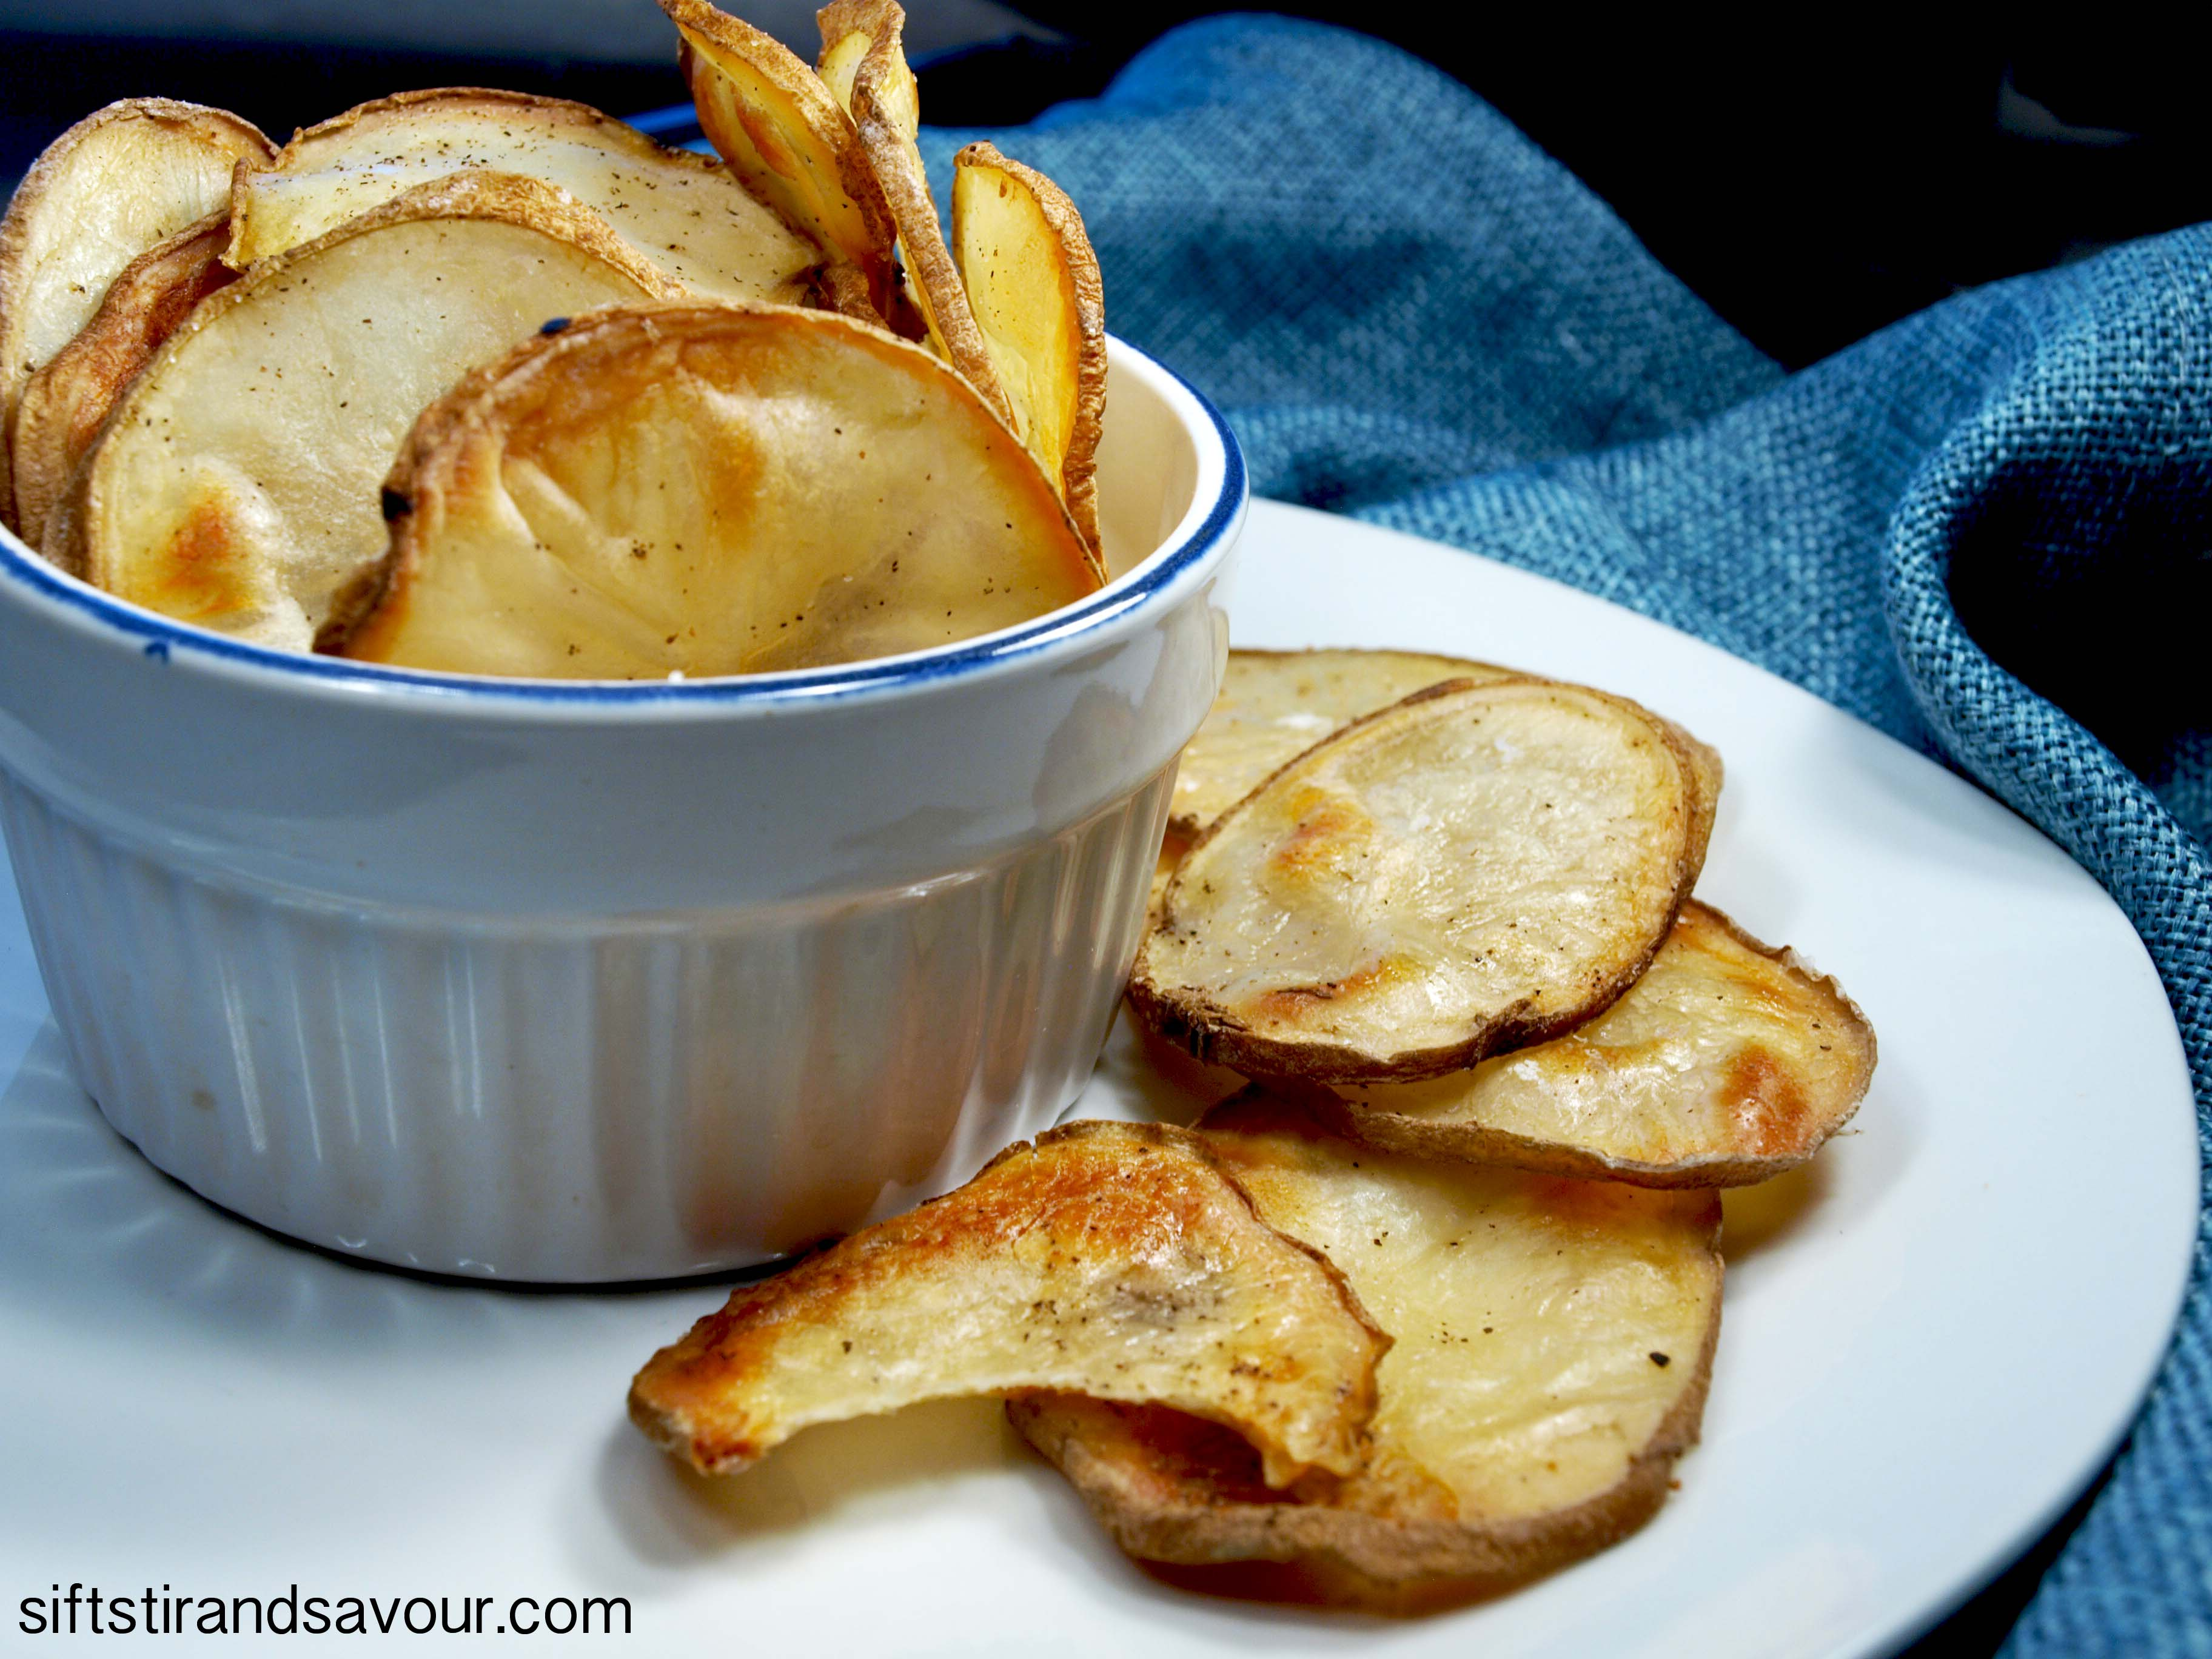 Homemade Potato Chips homemade potato chips - vegan & oil-free sift ...